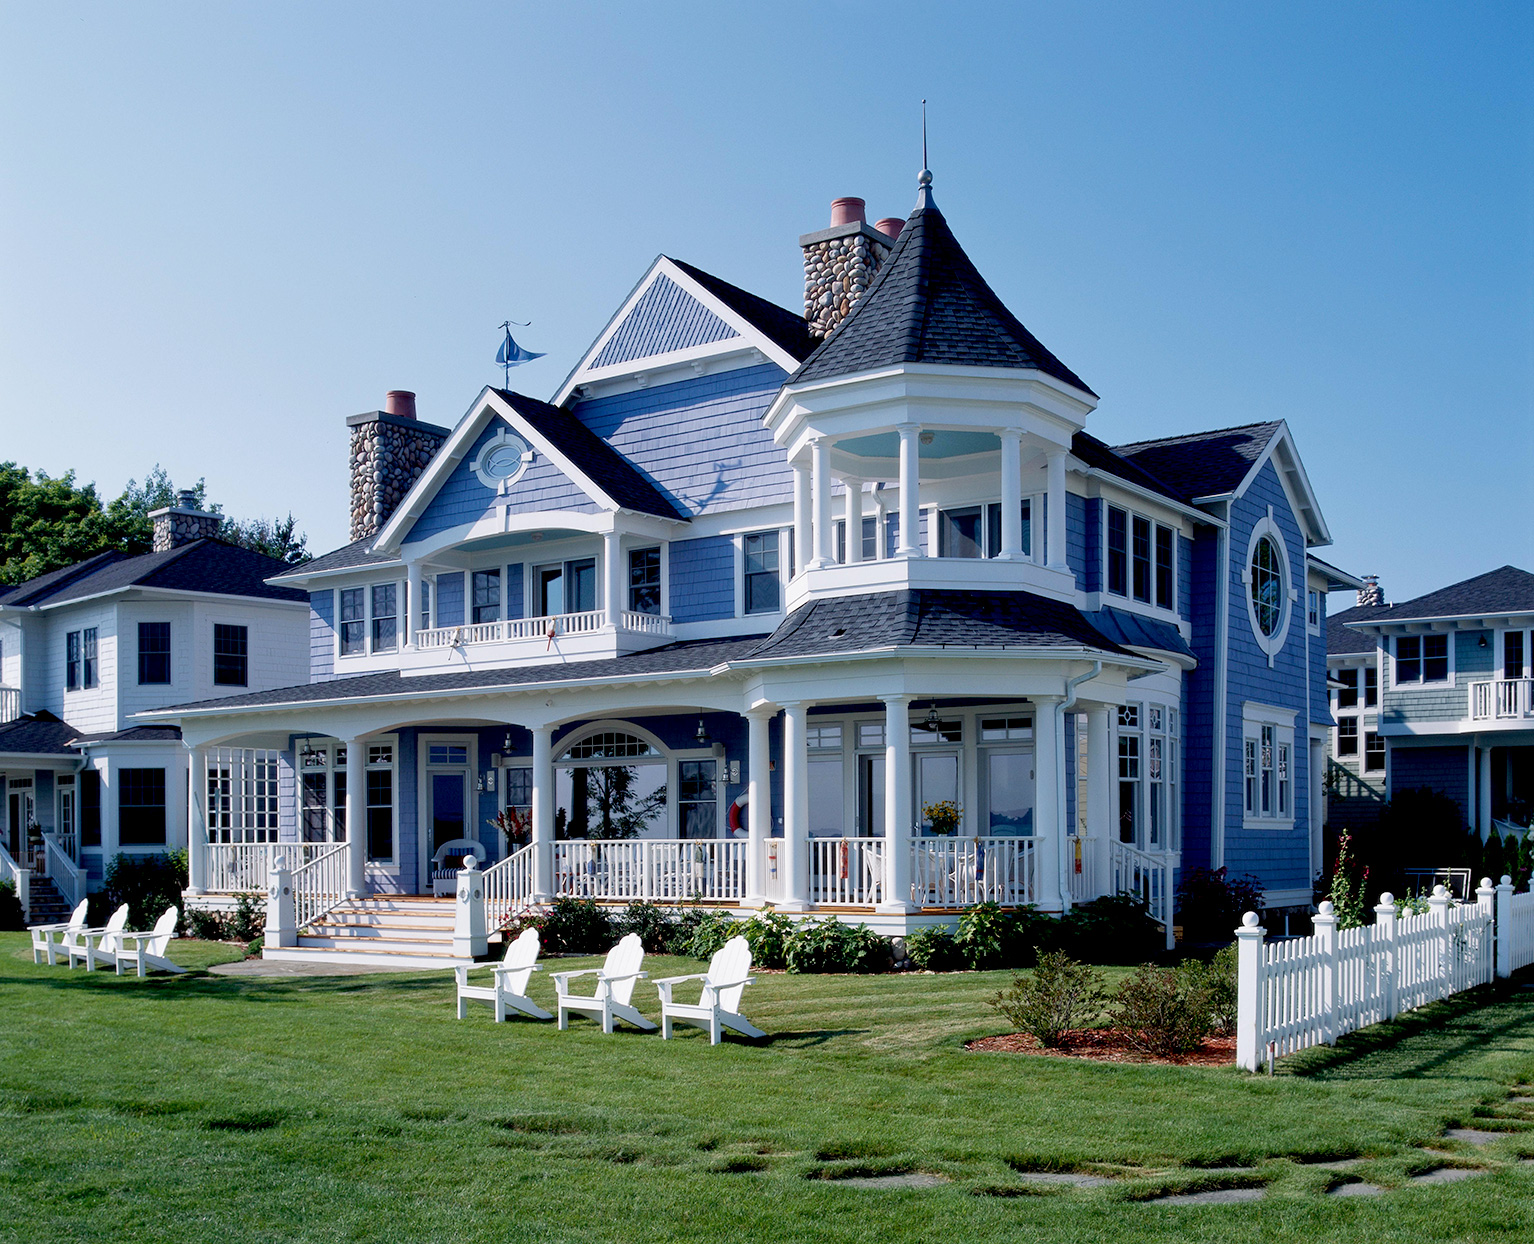 blue and white Victorian Lake Home with chairs